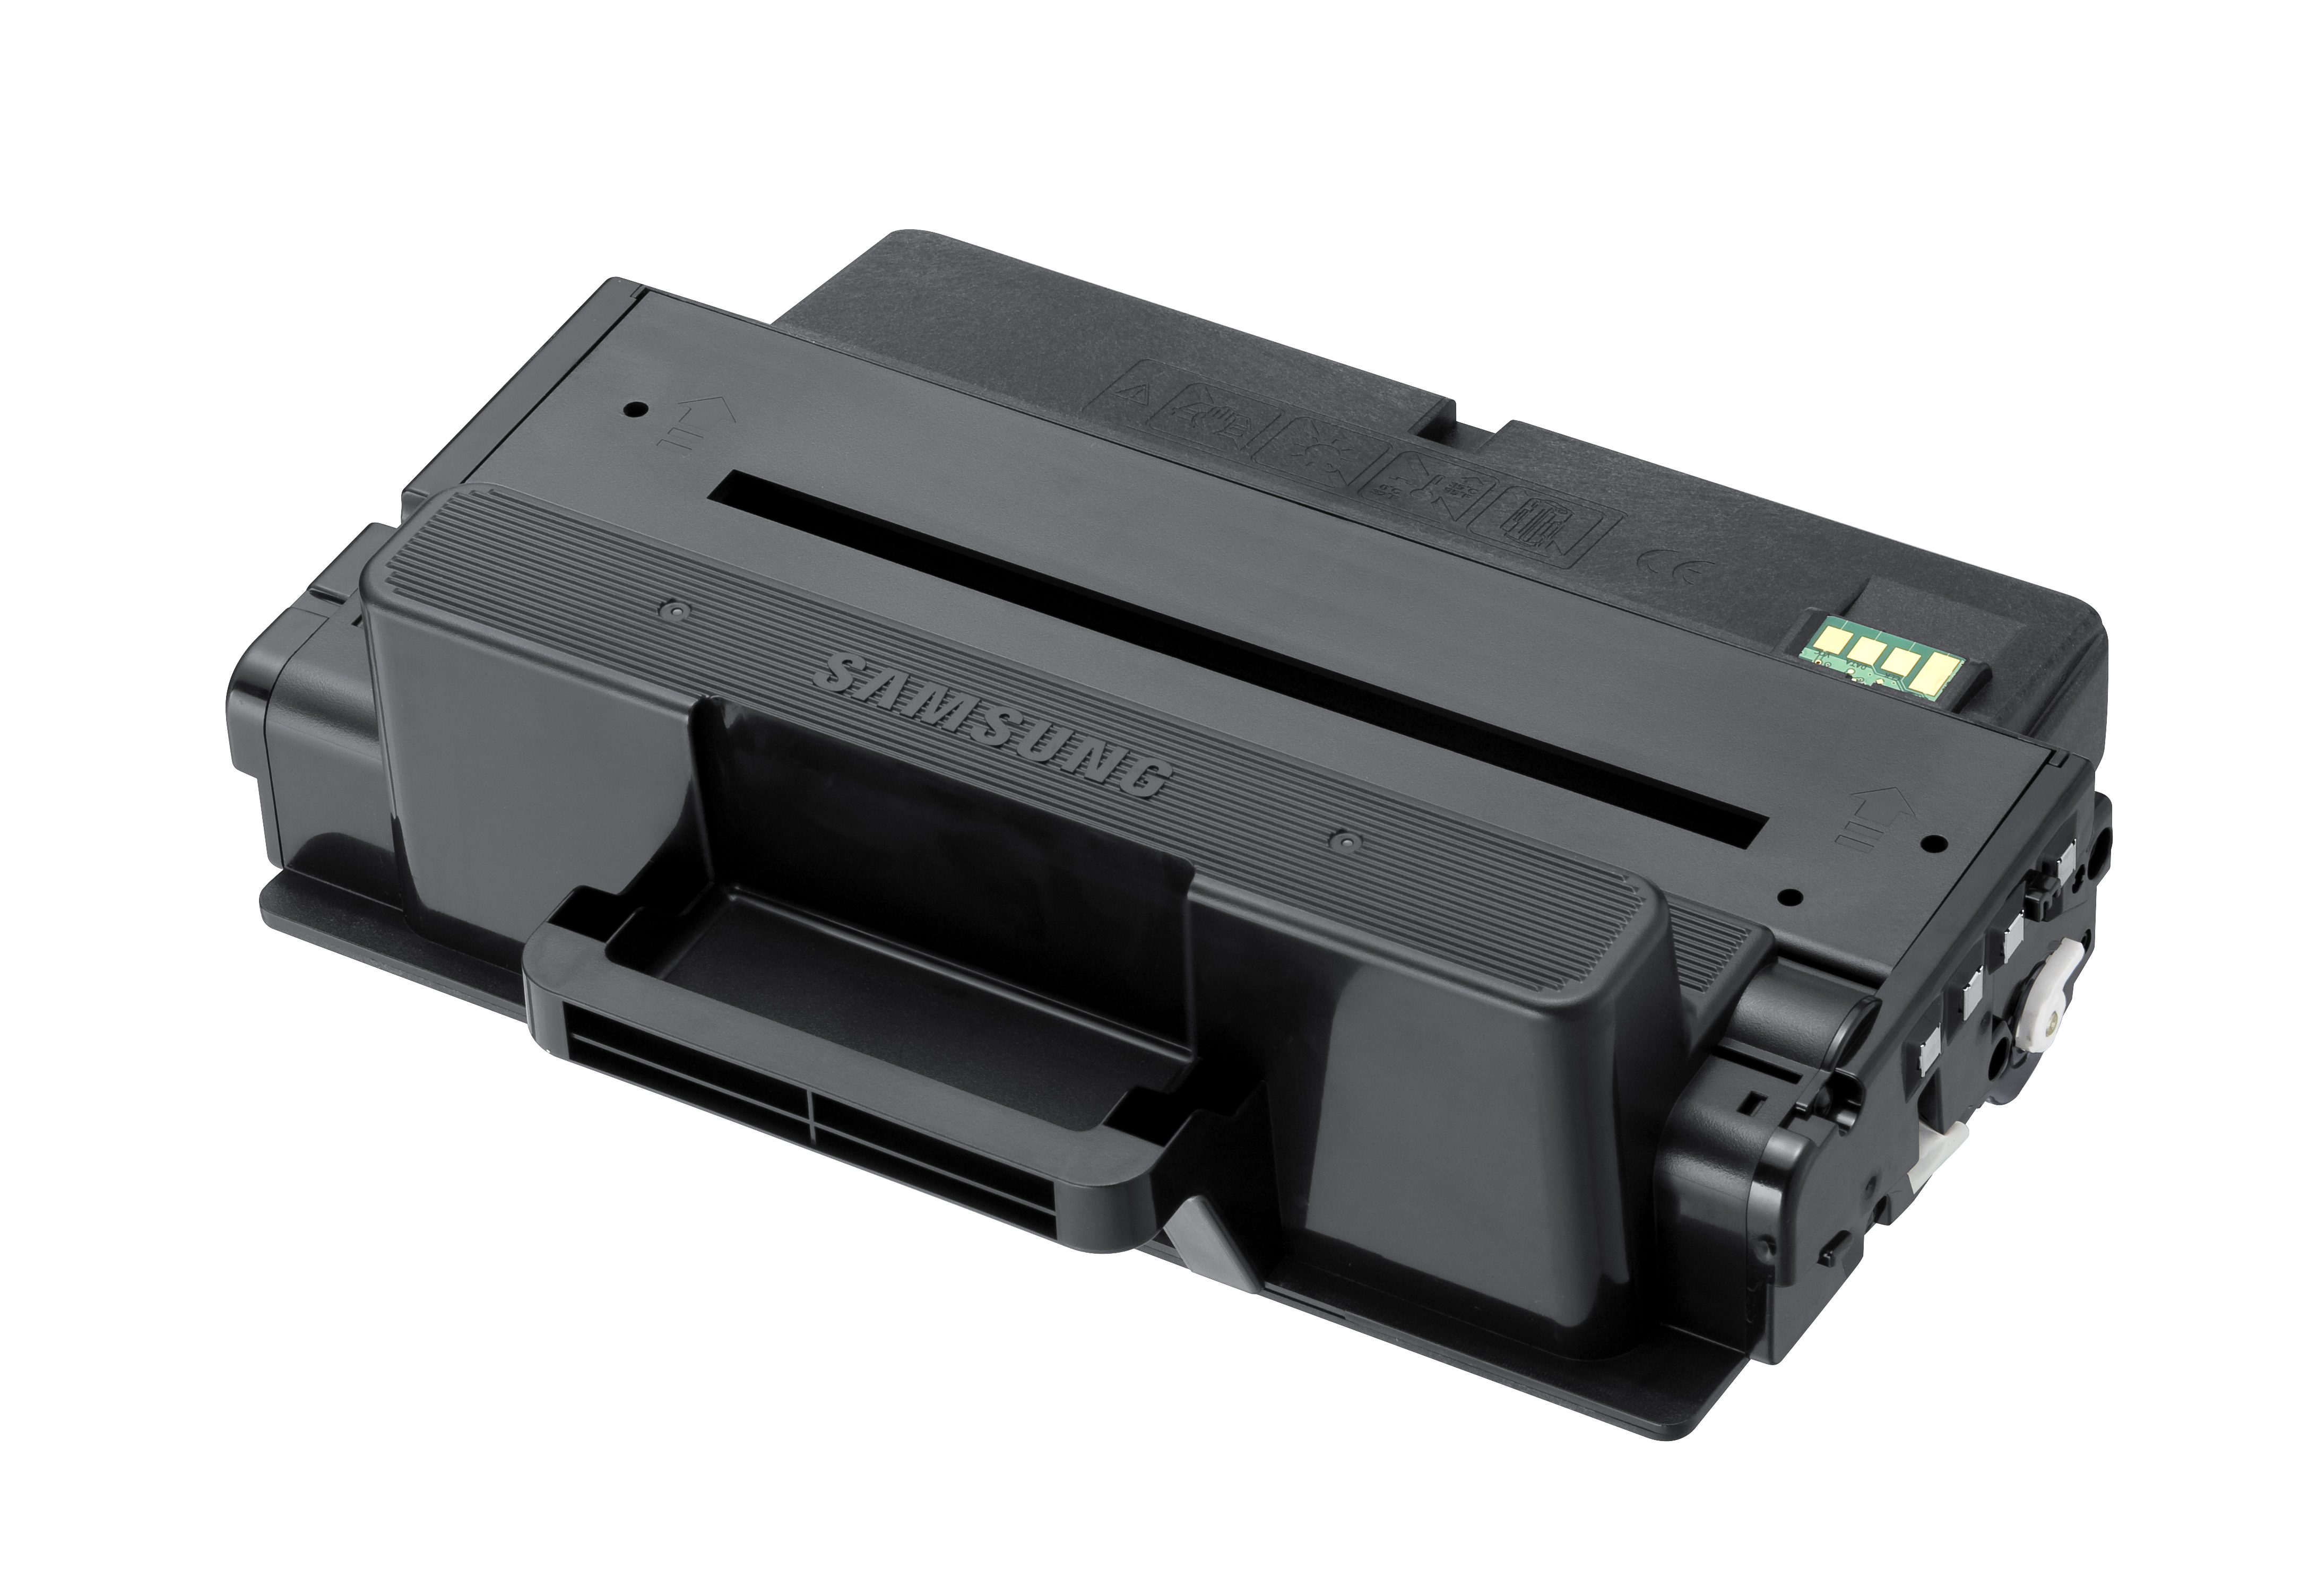 Remanufactured Samsung MLT-D205E Black Toner Cartridge 10k MLT-D205E - rem01